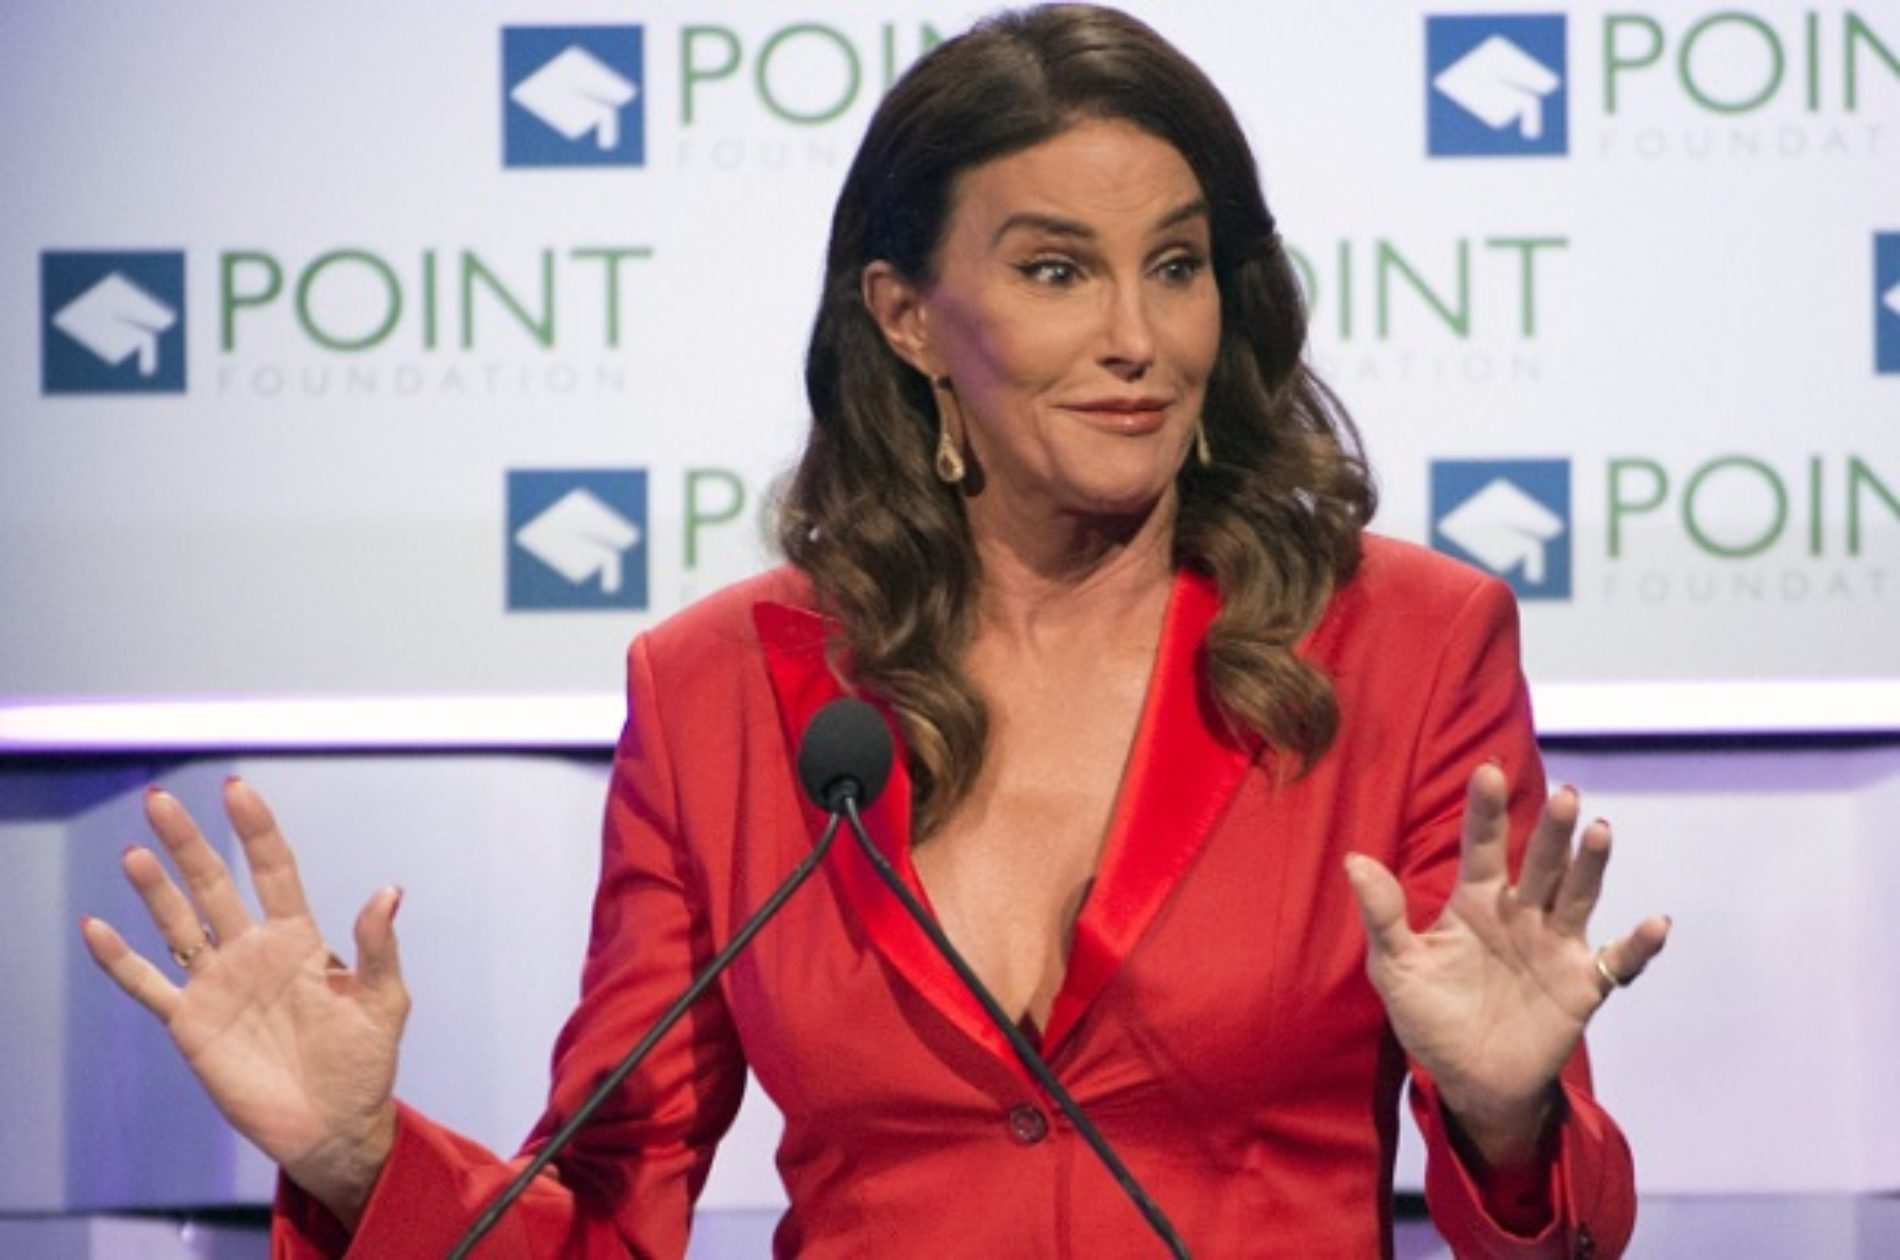 Caitlyn Jenner accused of transphobia